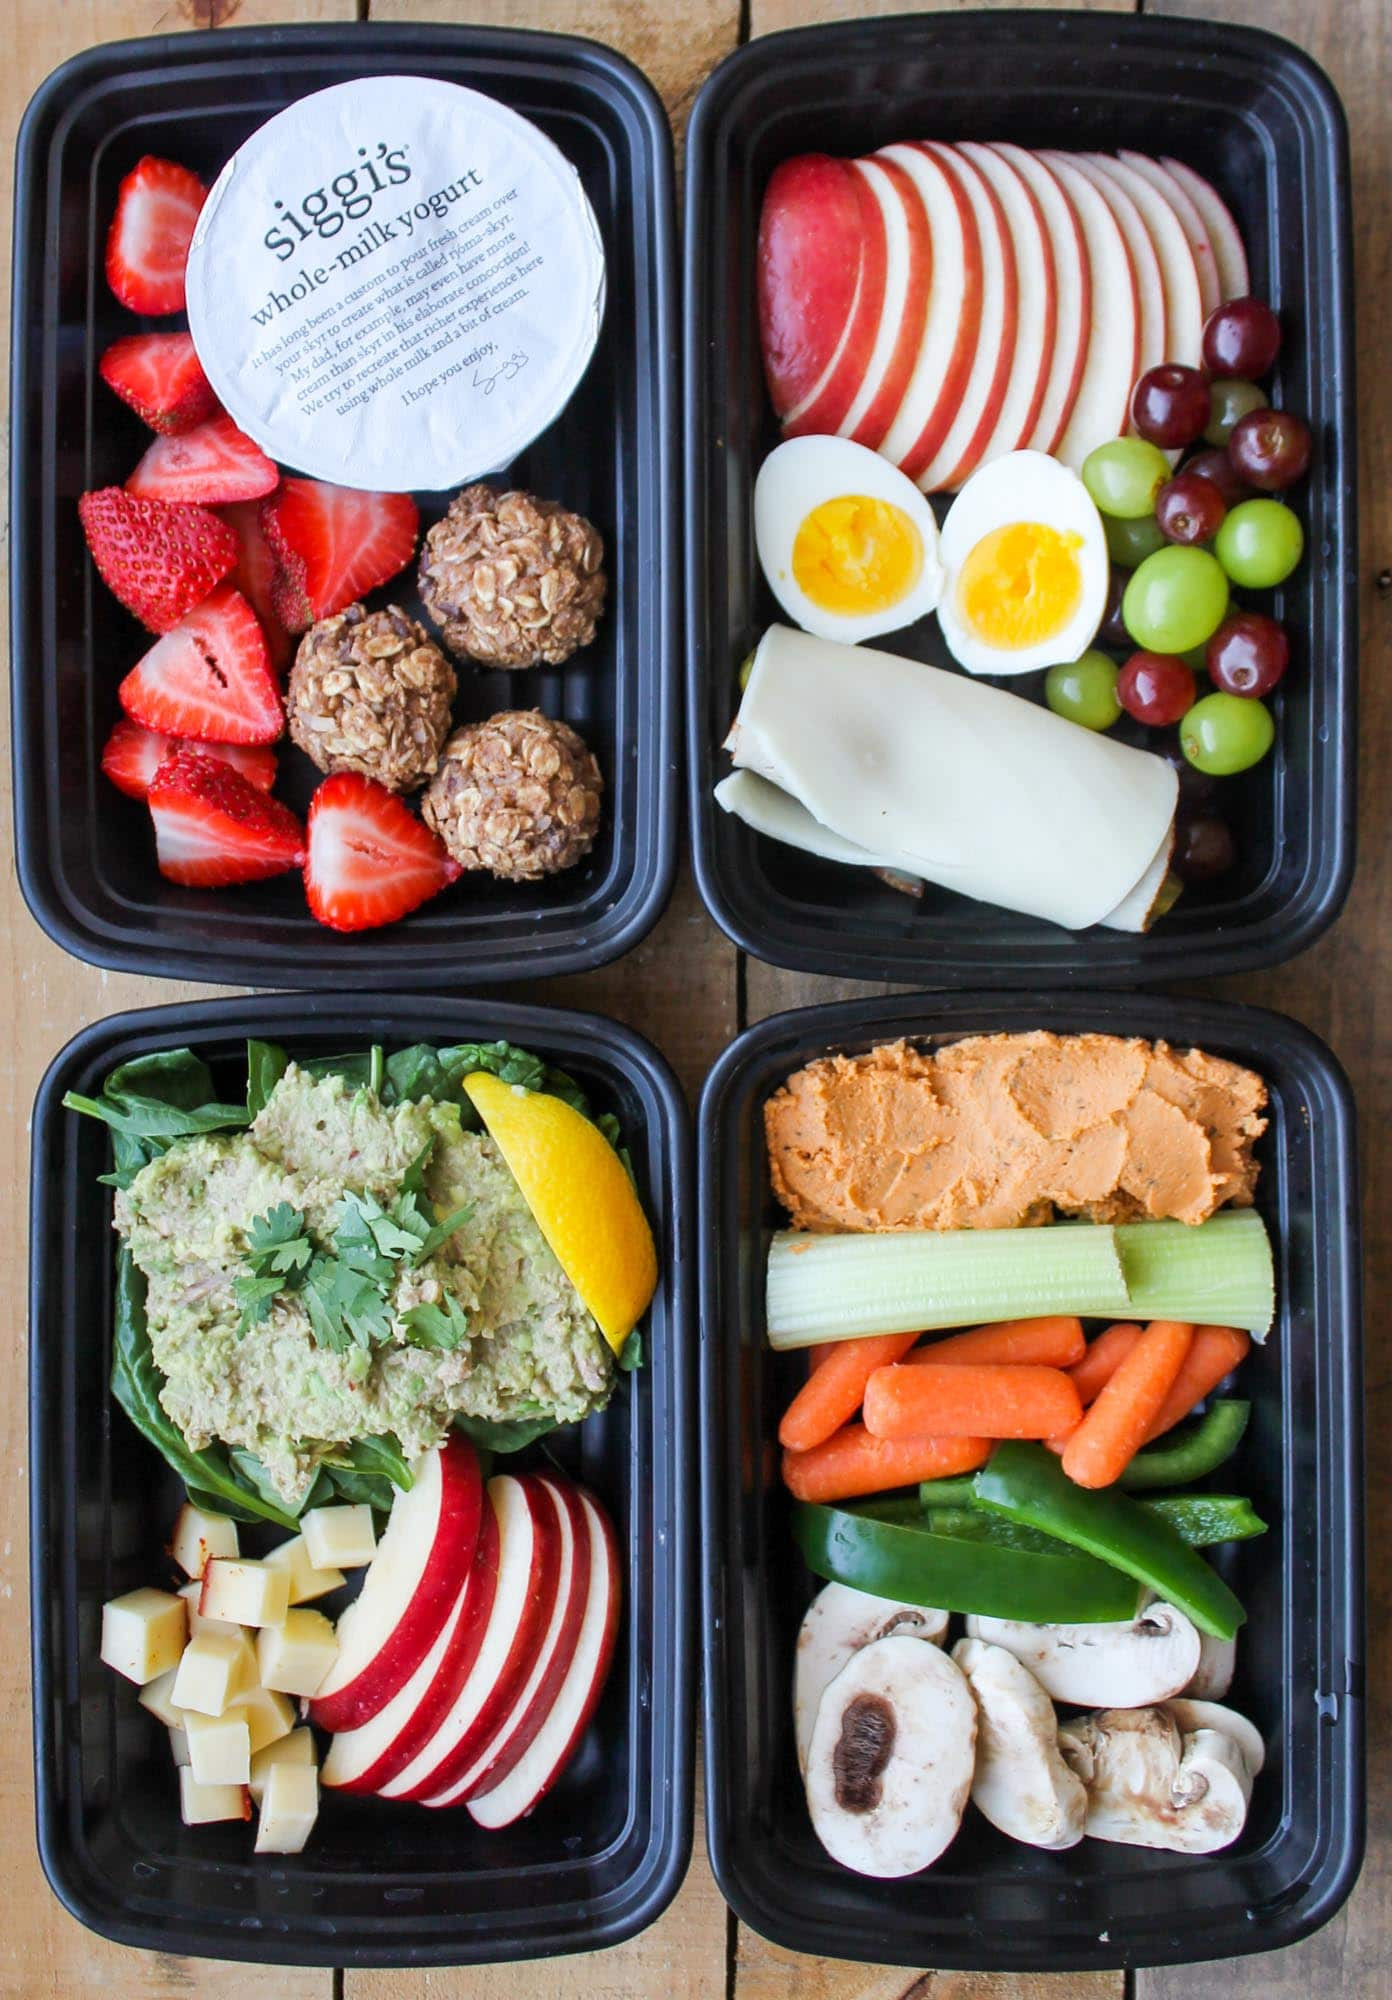 Snacks That Are Healthy  4 Healthy Snack Box Ideas Smile Sandwich